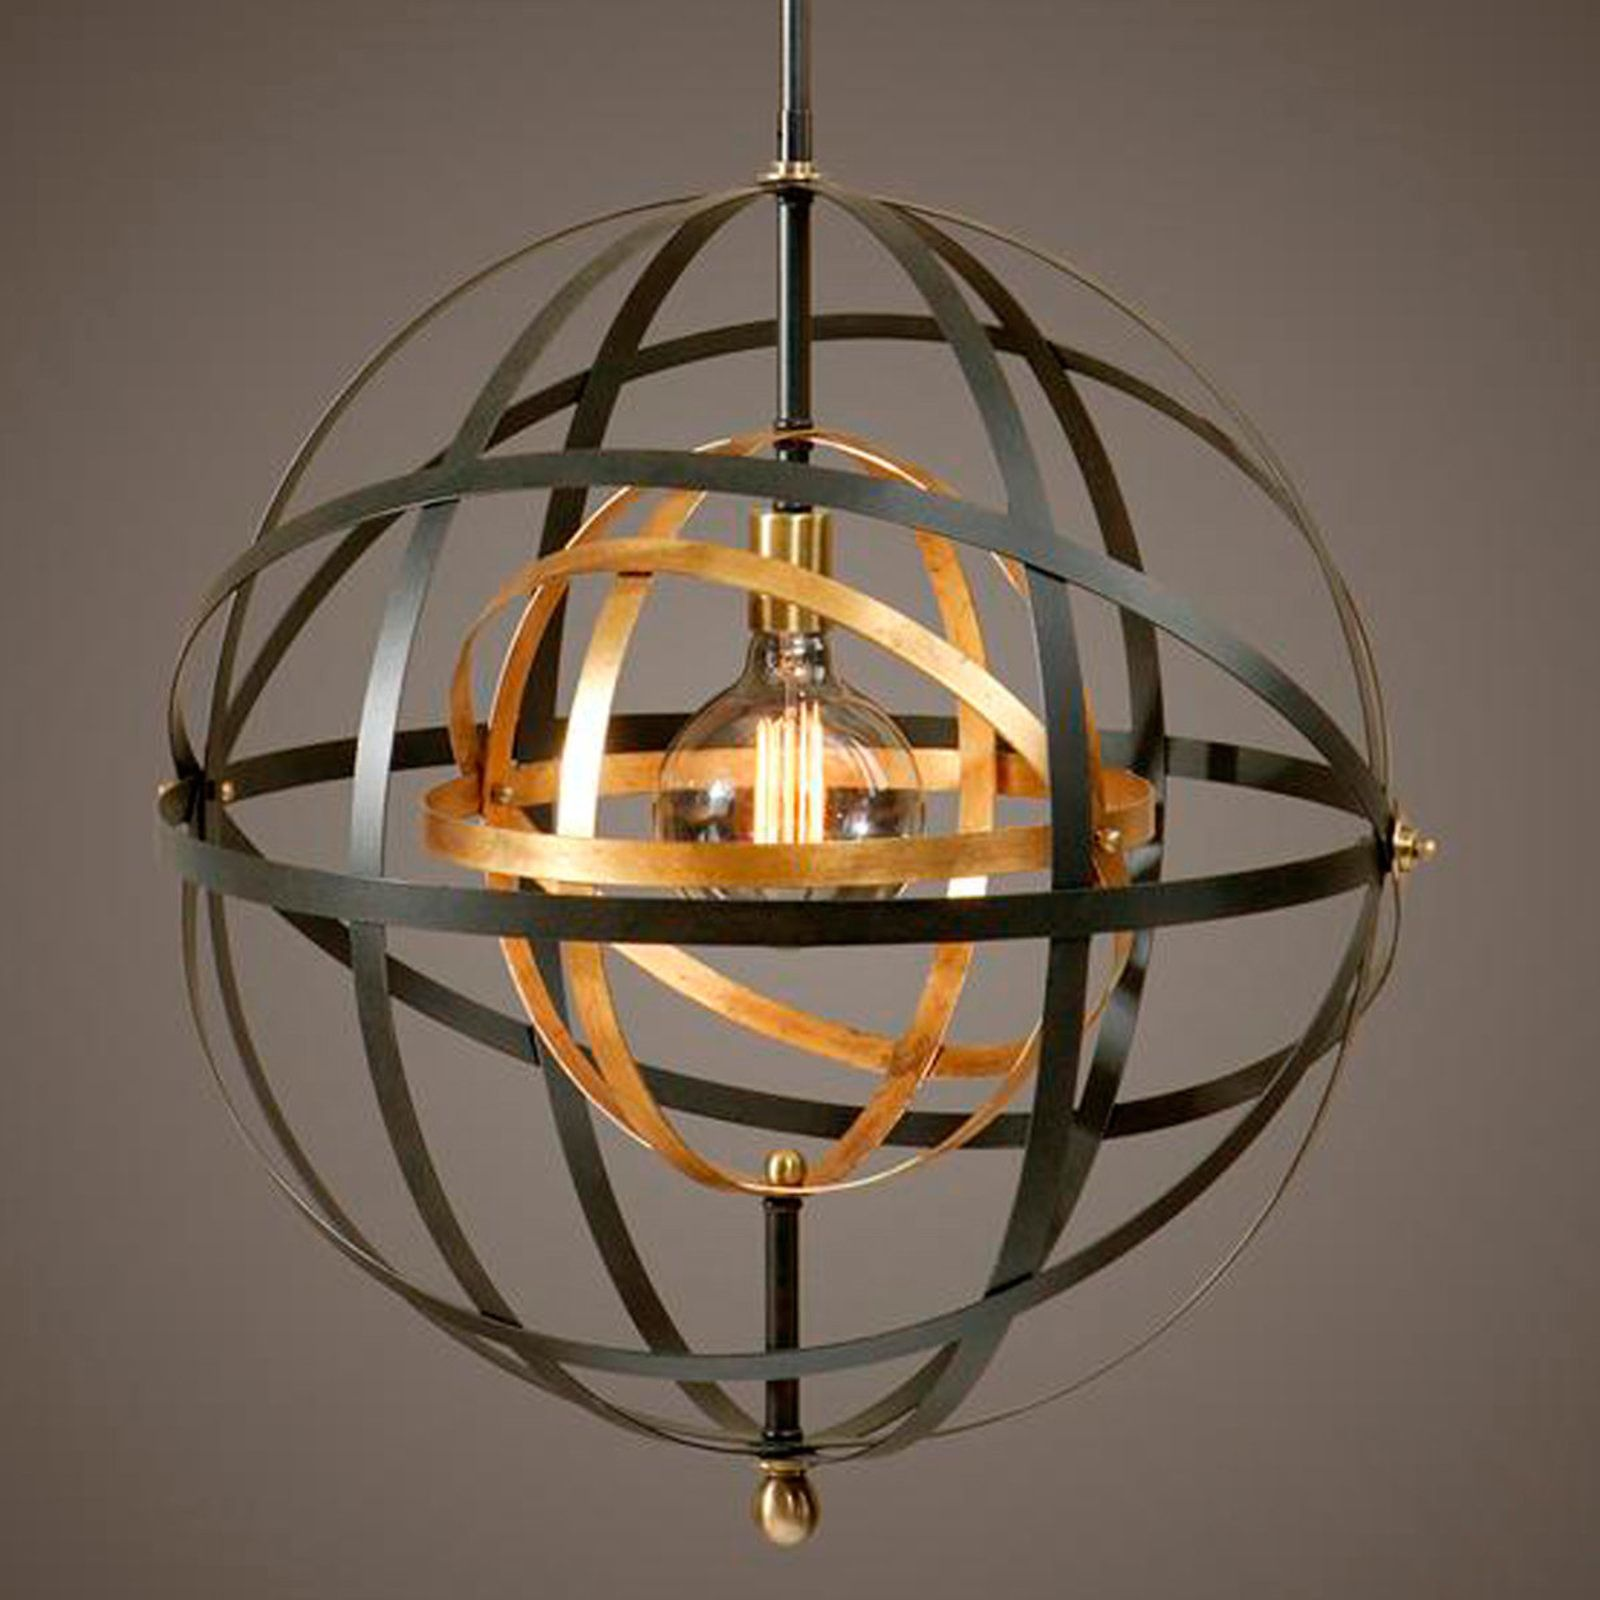 oil bronze designs rob rubbed globe trans chandelier hayneedle old world lighting orb master sphere